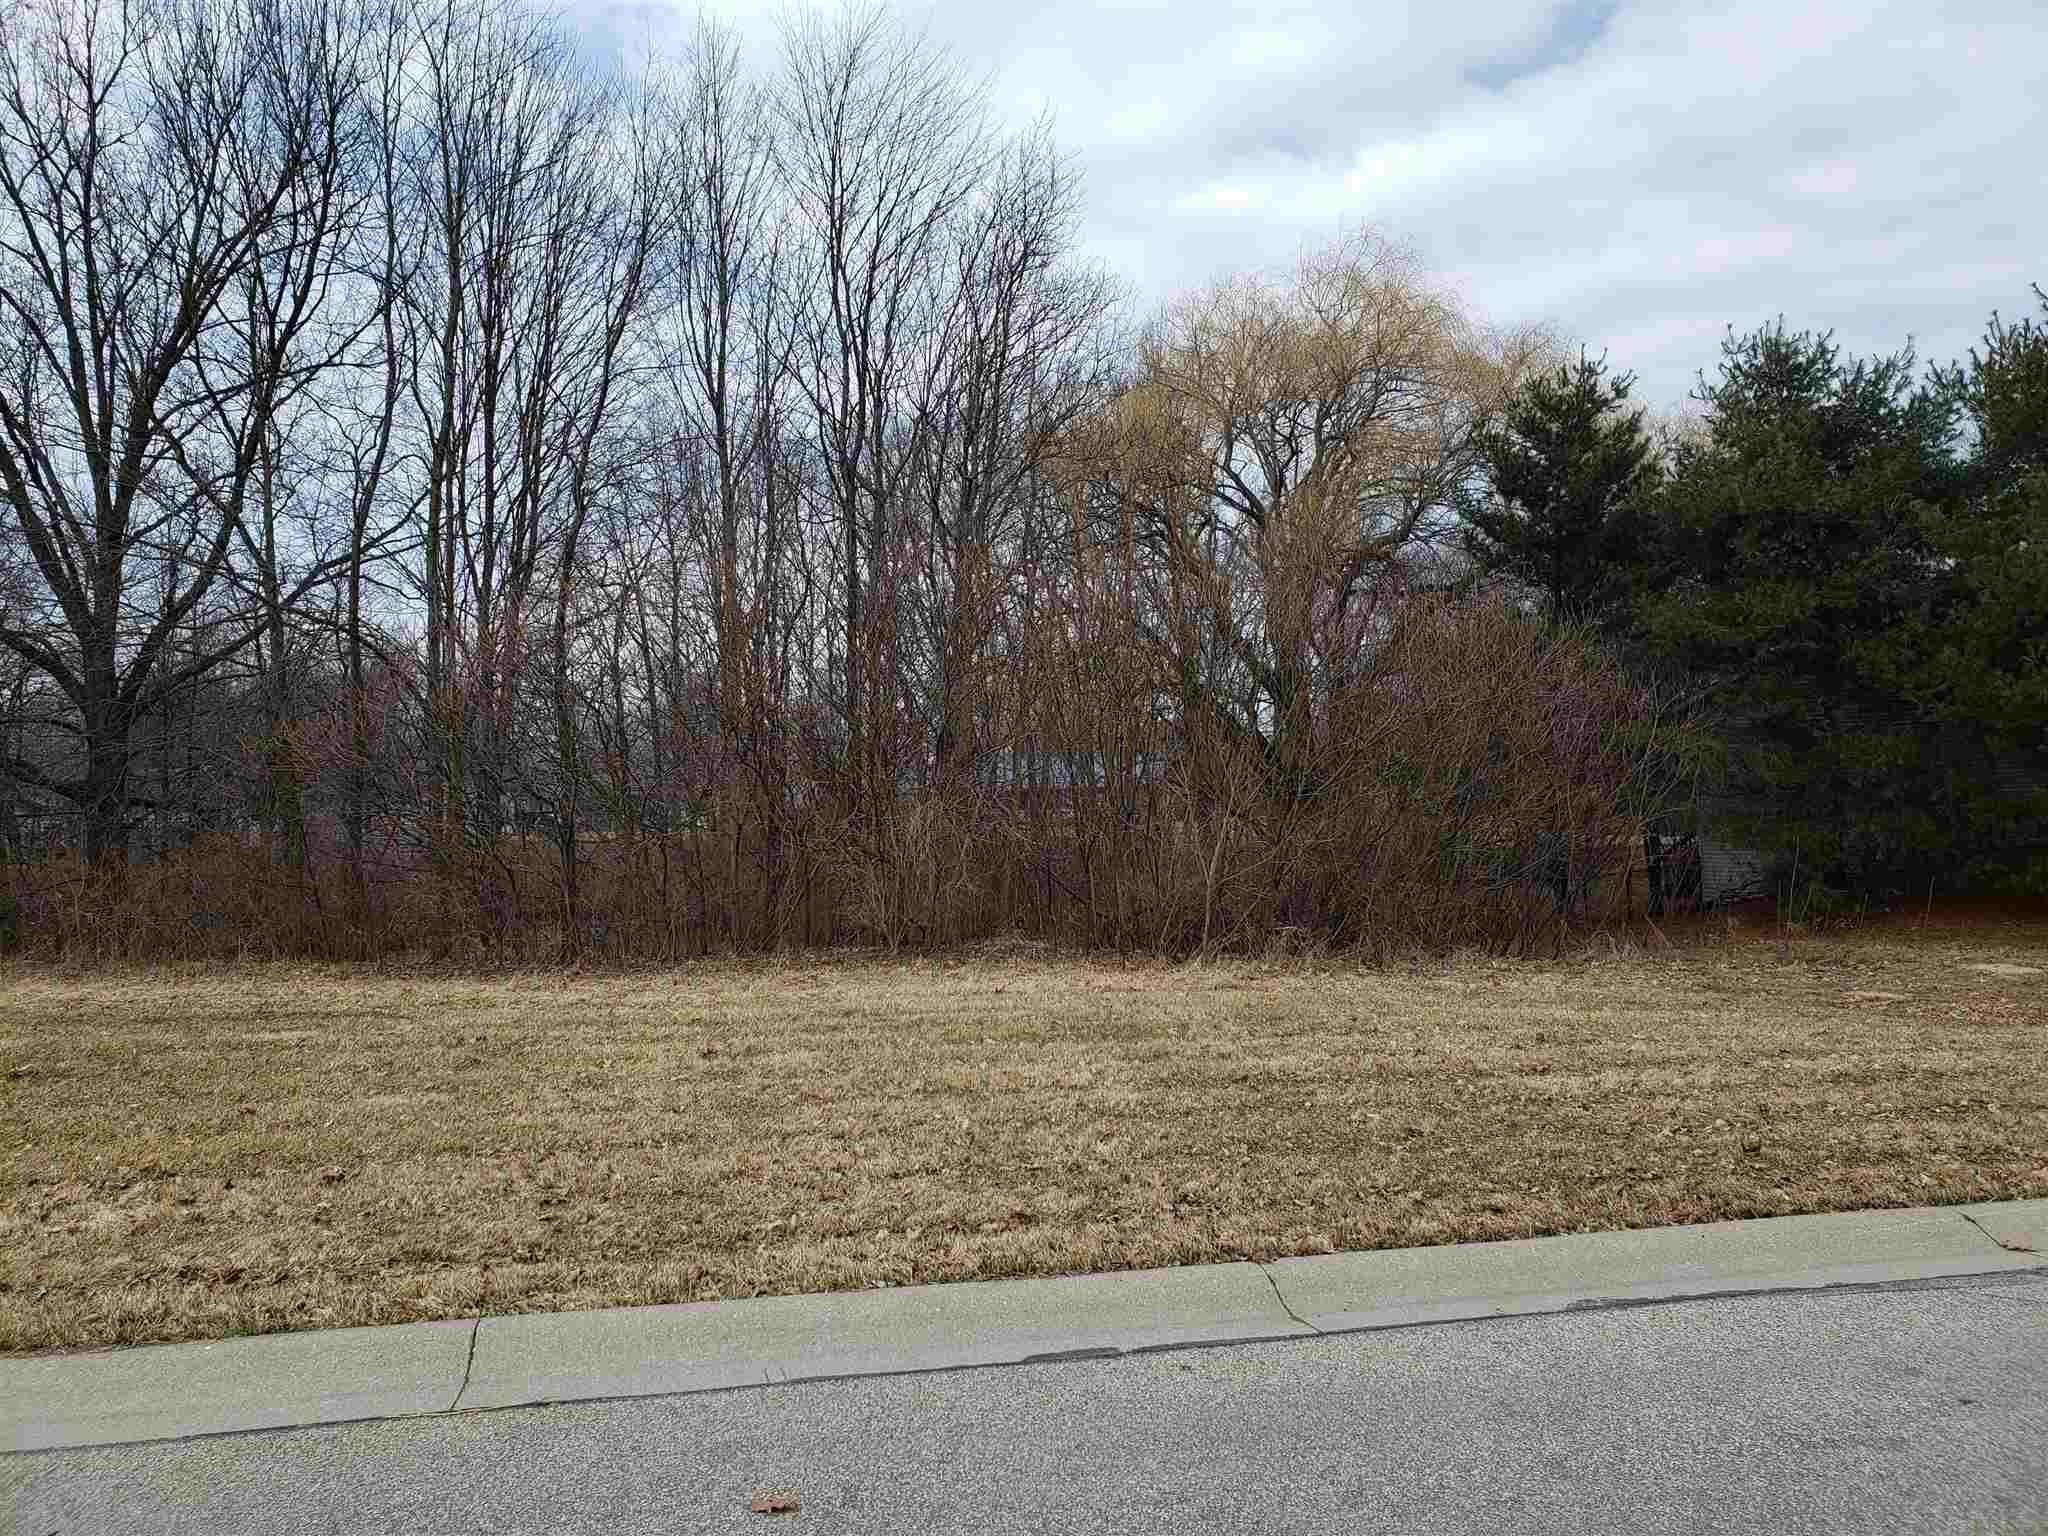 Residential Lots & Land for Sale at Spring Valley Drive Middlebury, Indiana 46540 United States